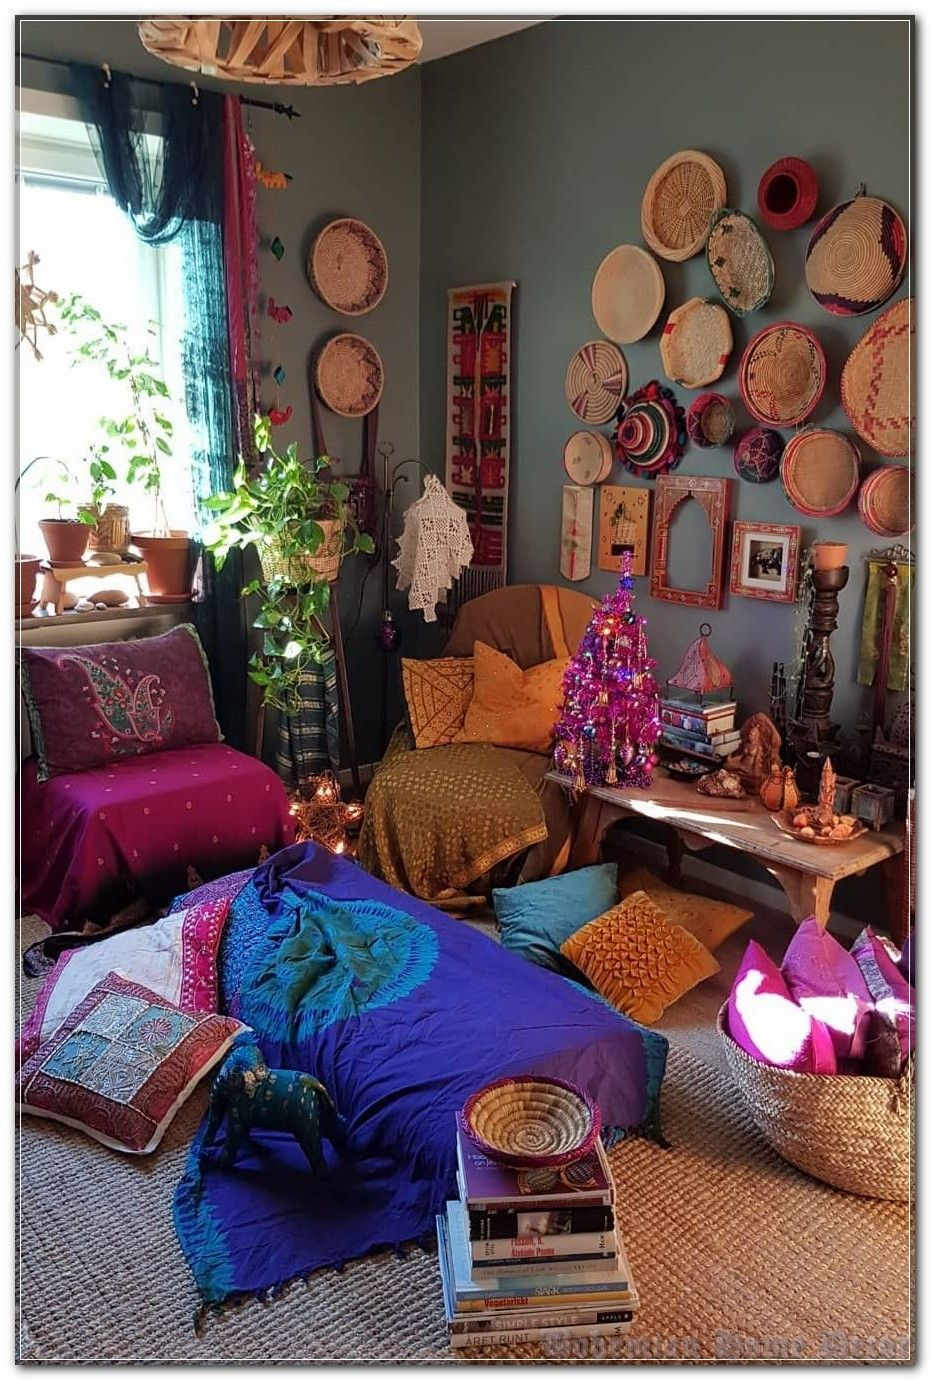 Don't Waste Time! 5 Facts To Start Bohemian Home Decor